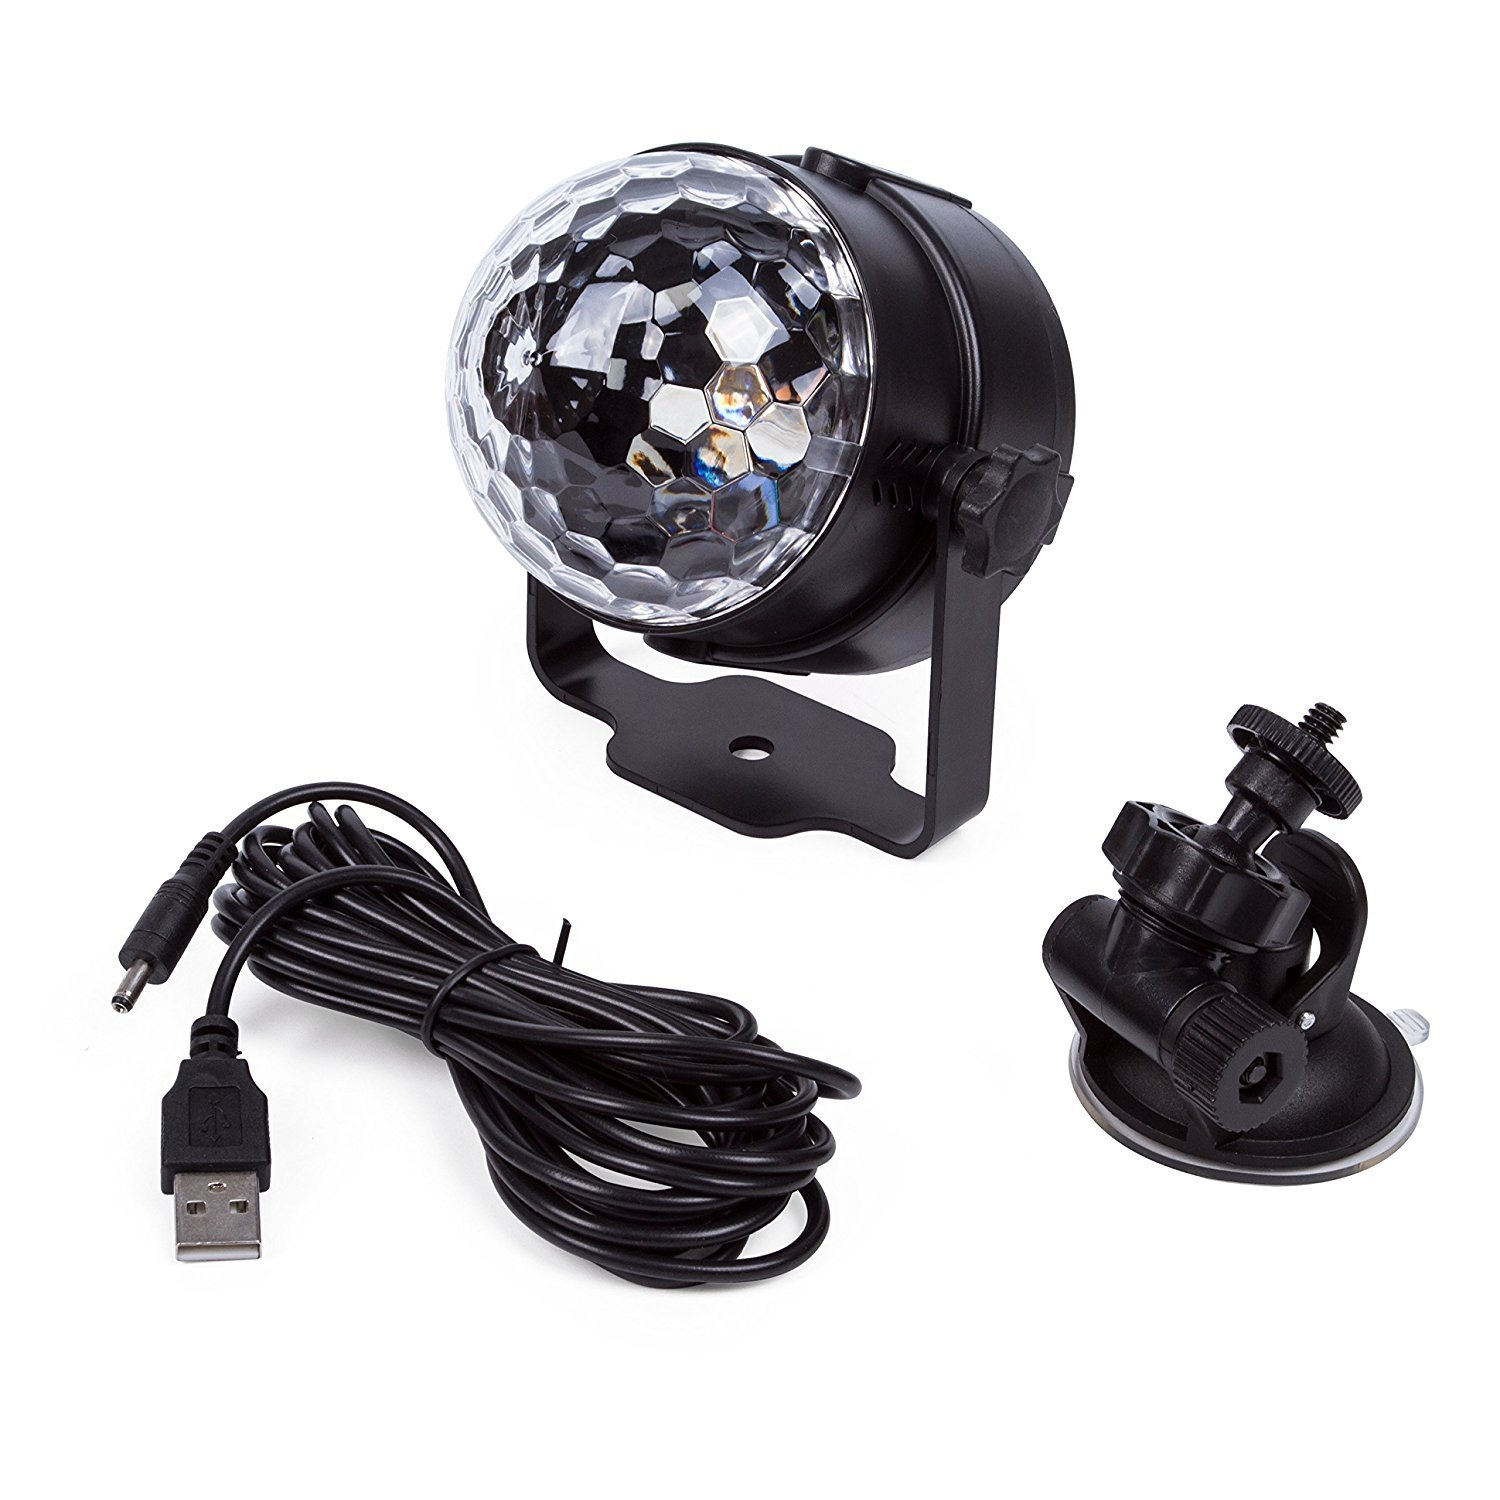 ELEOPTION Mini Stage LED Light 3W RGB Crystal Magic Ball LED Lamp 7 Colors Rotating Outdoor Car Stage DJ Disco Light USB Rechargeable Self-Propelled & Sound Activated Colorful Light by Eleoption (Image #6)